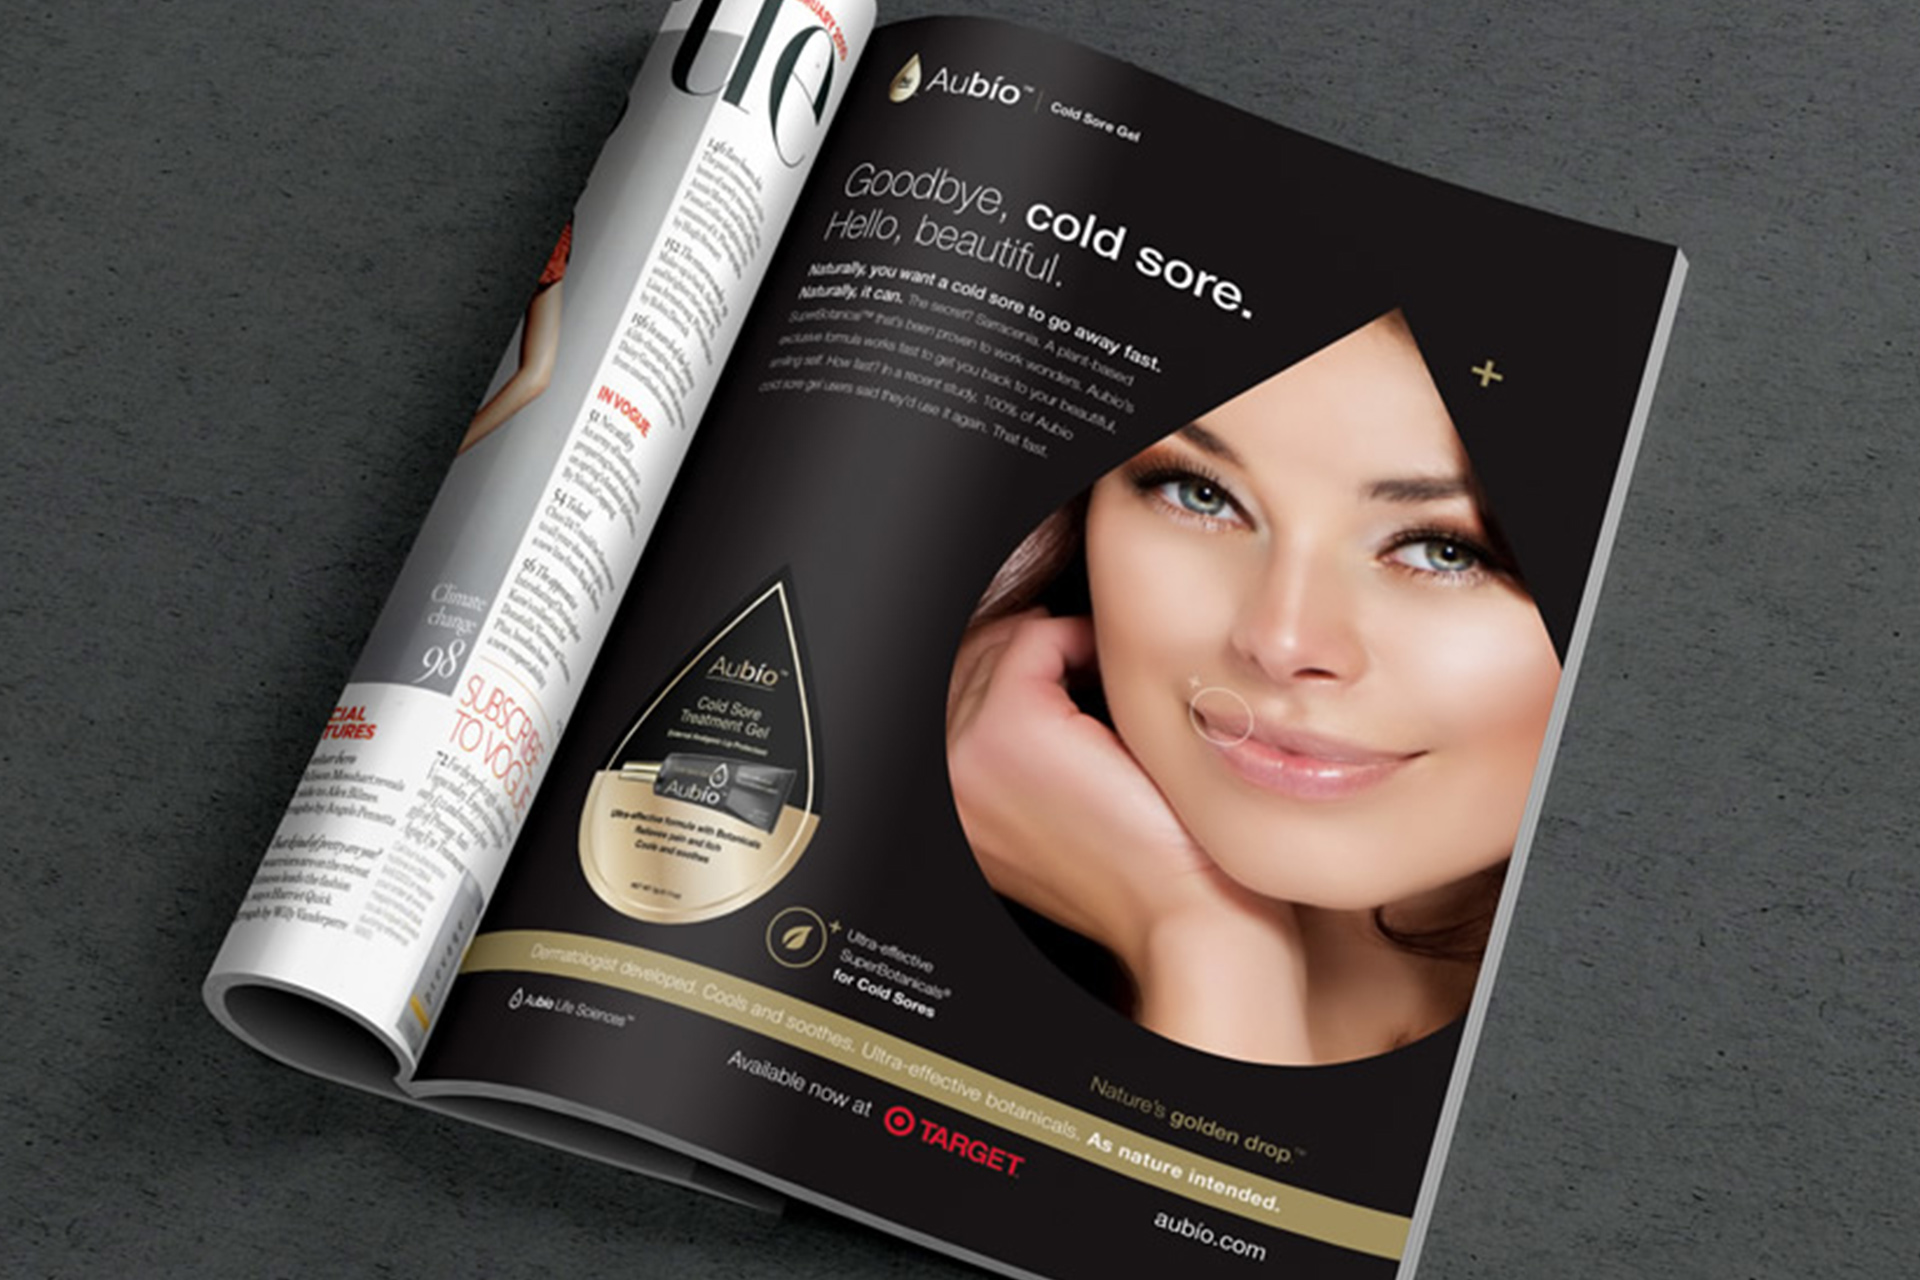 Aubio Cold Sore Gel Advertising Campaign